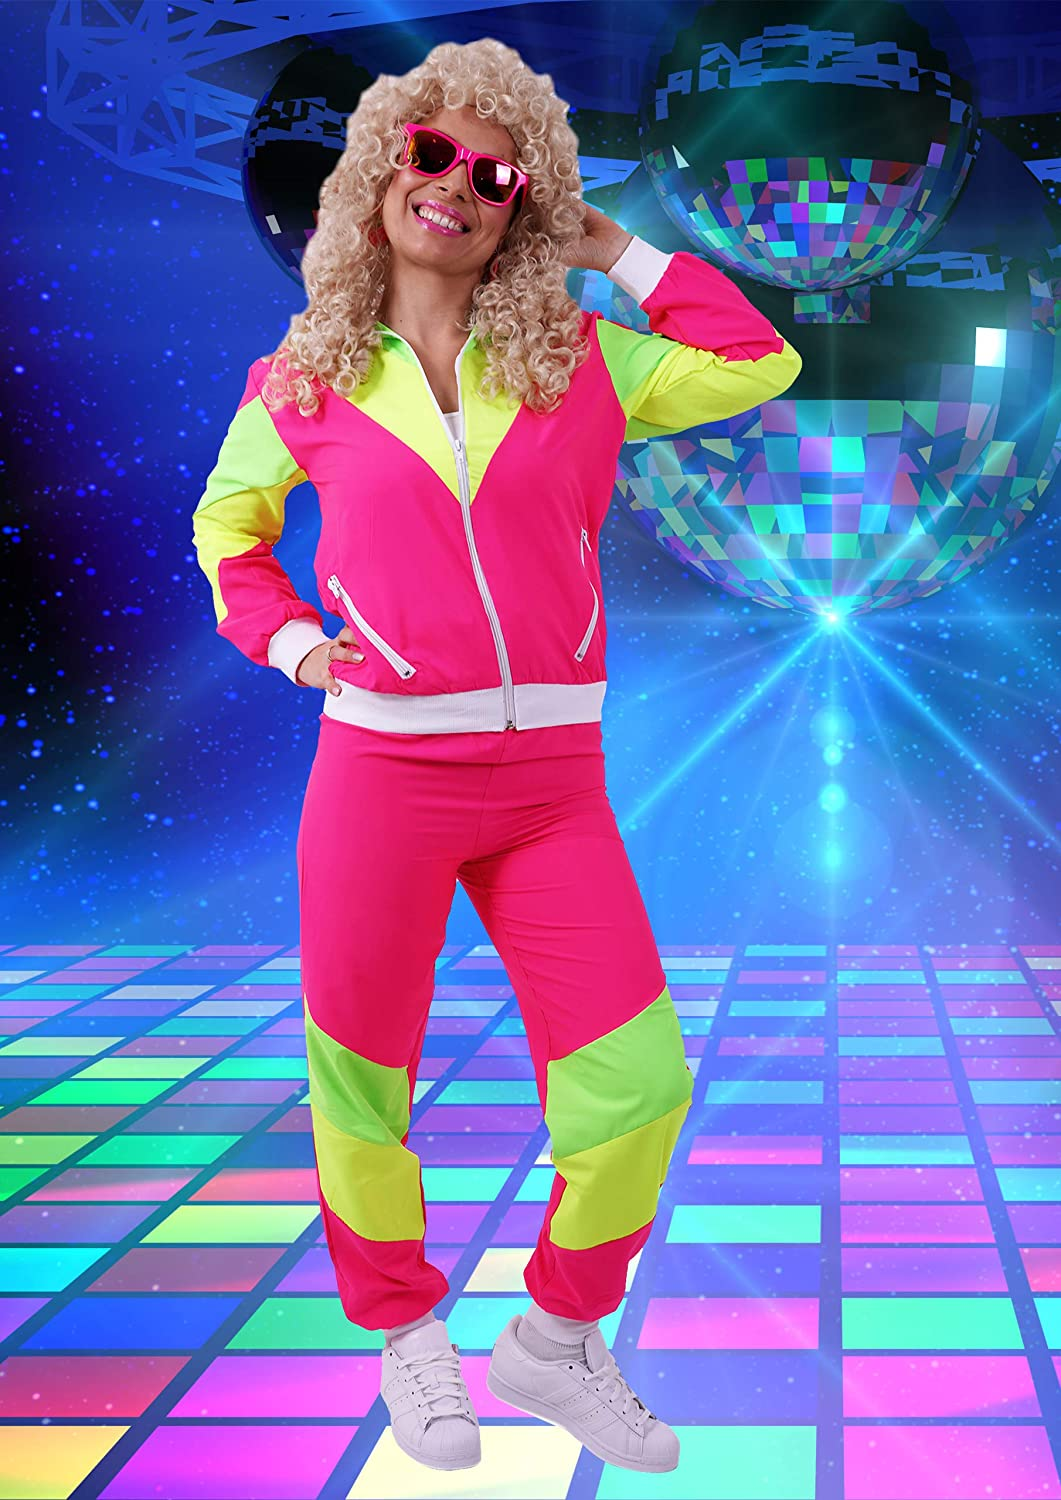 80s Costumes for Men//Windbreaker and Pants 90s Shell Suit Party Dress Costume//Retro Tracksuit 80s 90s Hip Hop Costumes